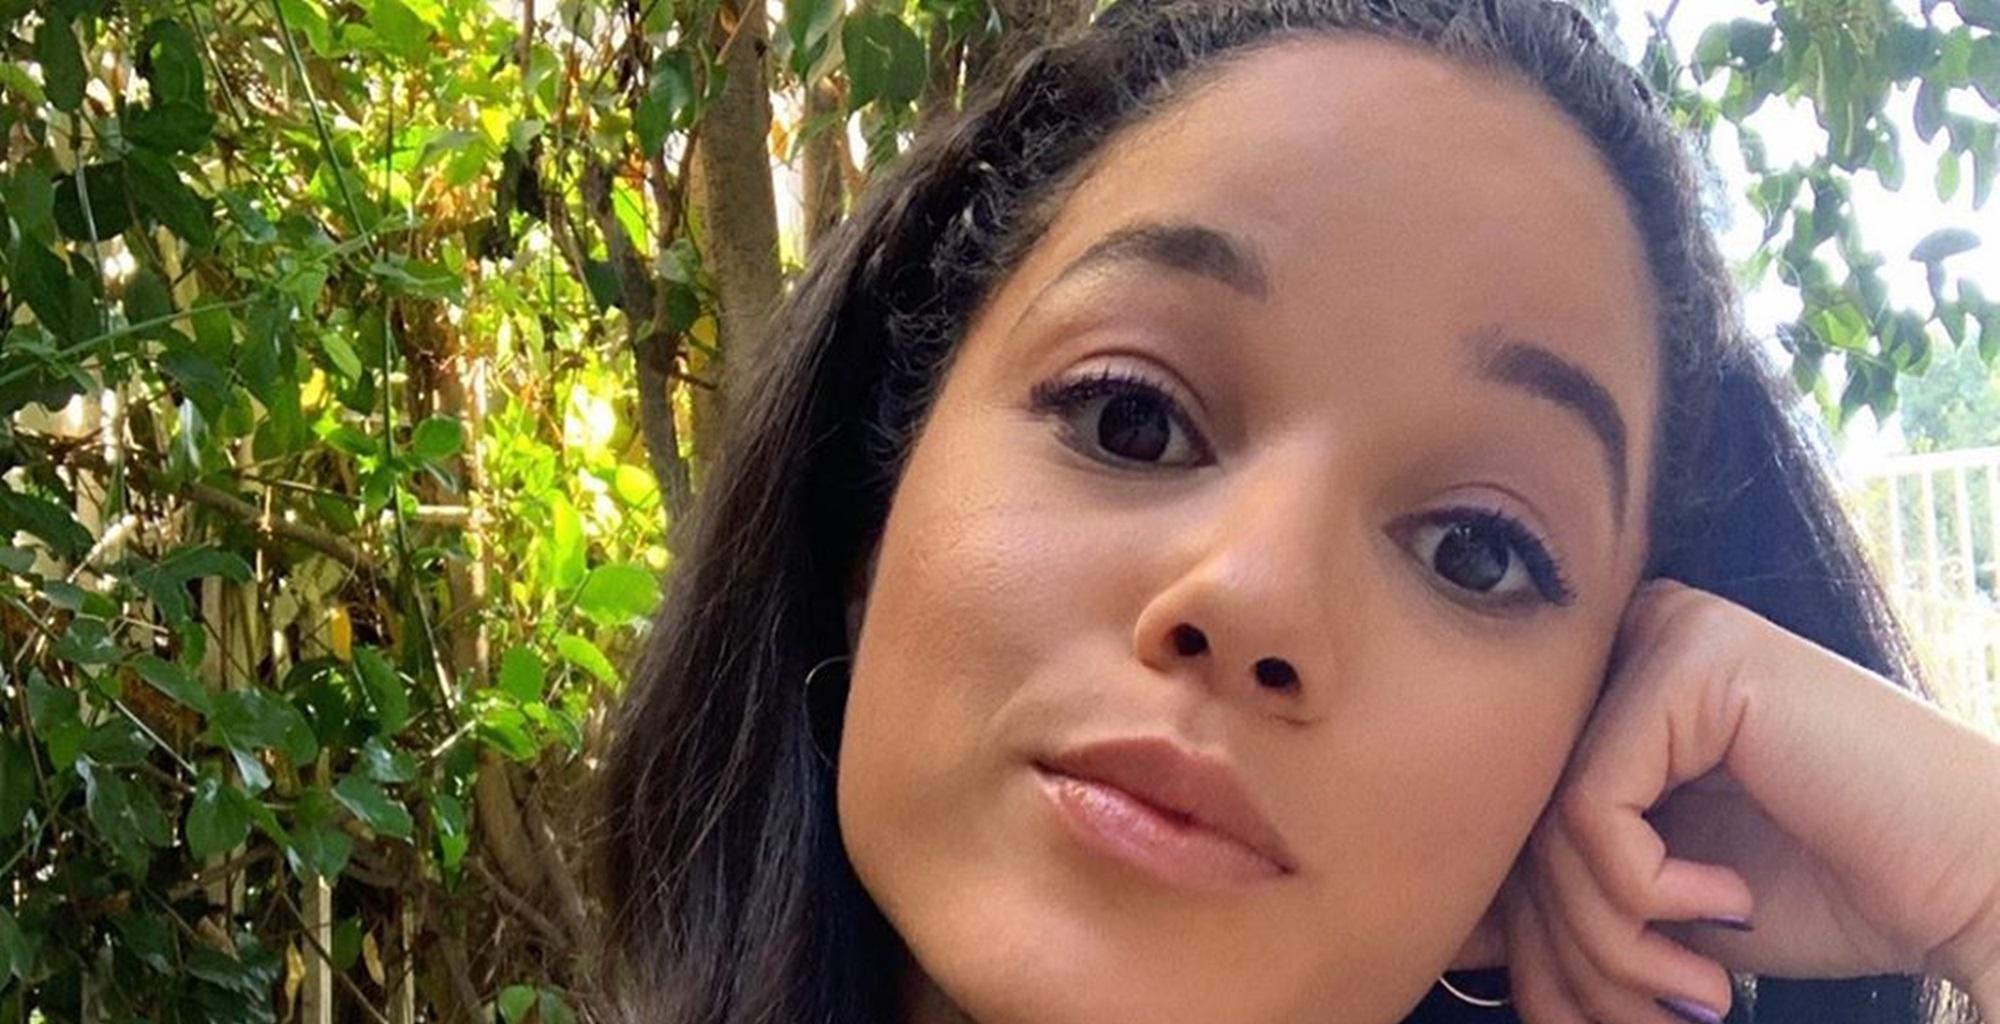 Justin Timberlake's Incident With Alisha Wainwright Has This Celebrity Threatening Her Husband If He Ever Dares To Touch Another Woman's Hand